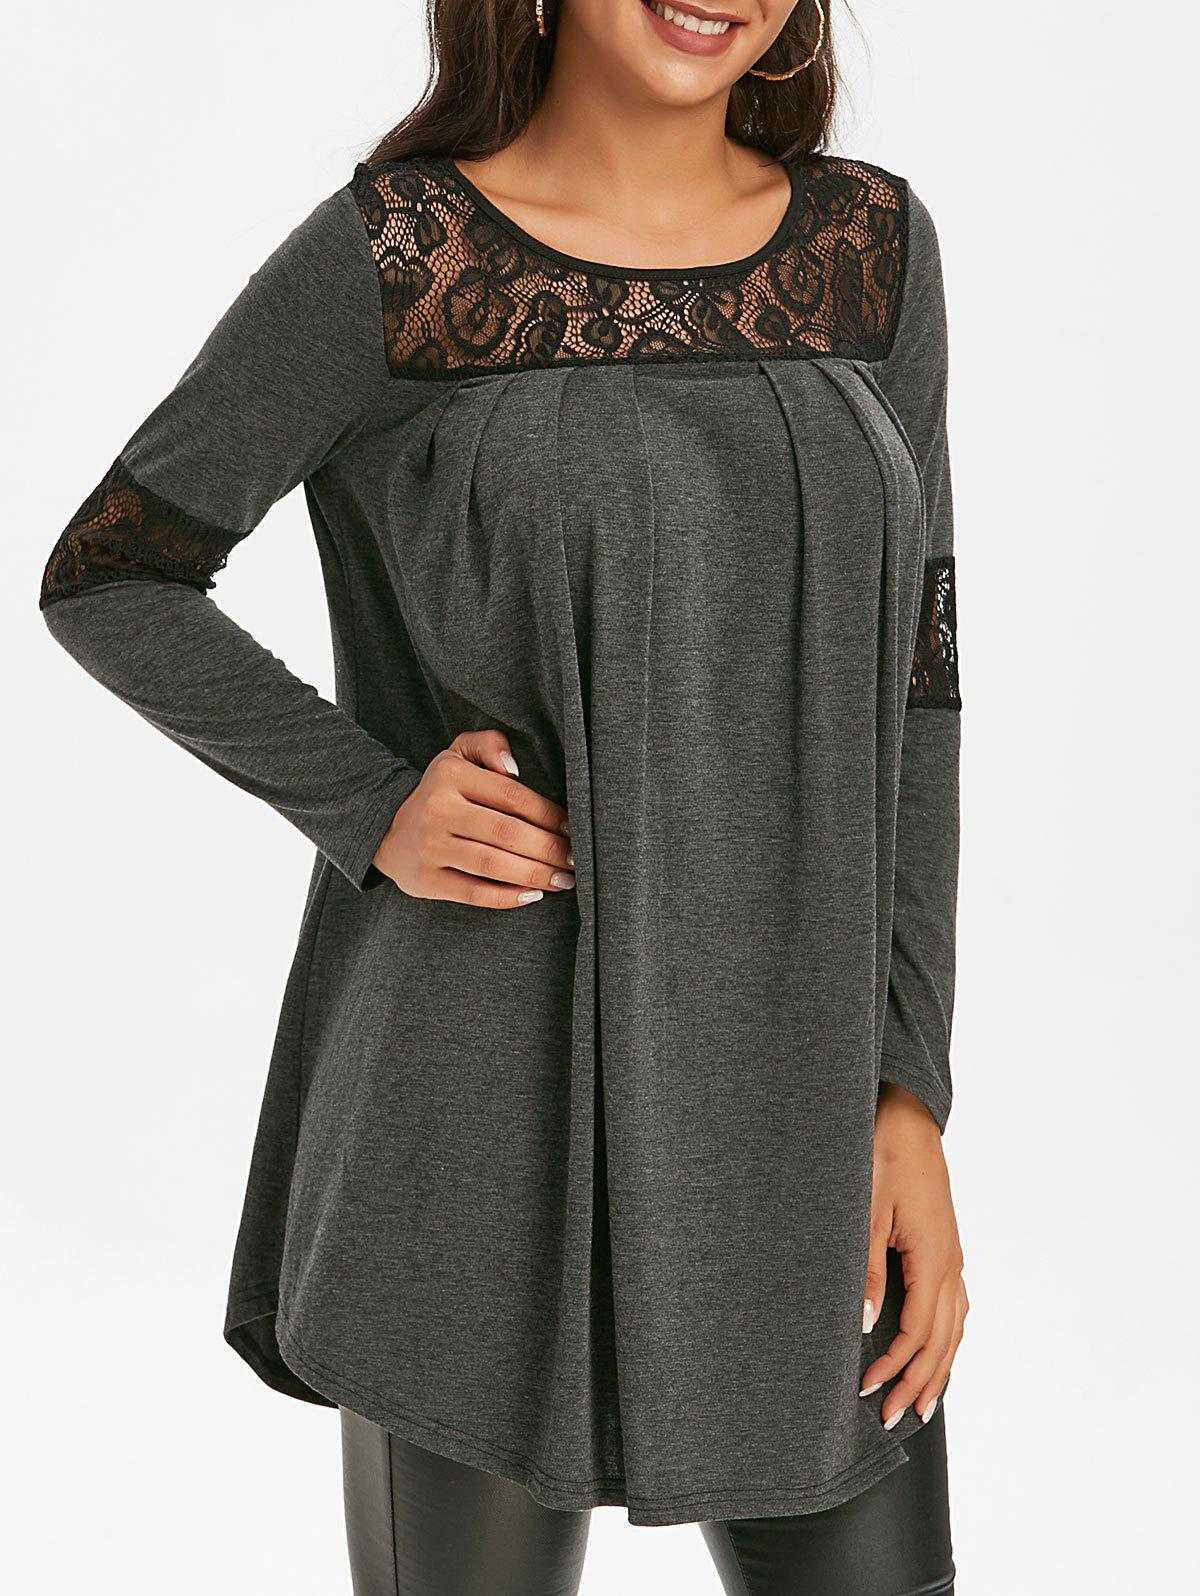 Heathered Lace Insert Tunic T Shirt - ASH GRAY 3XL